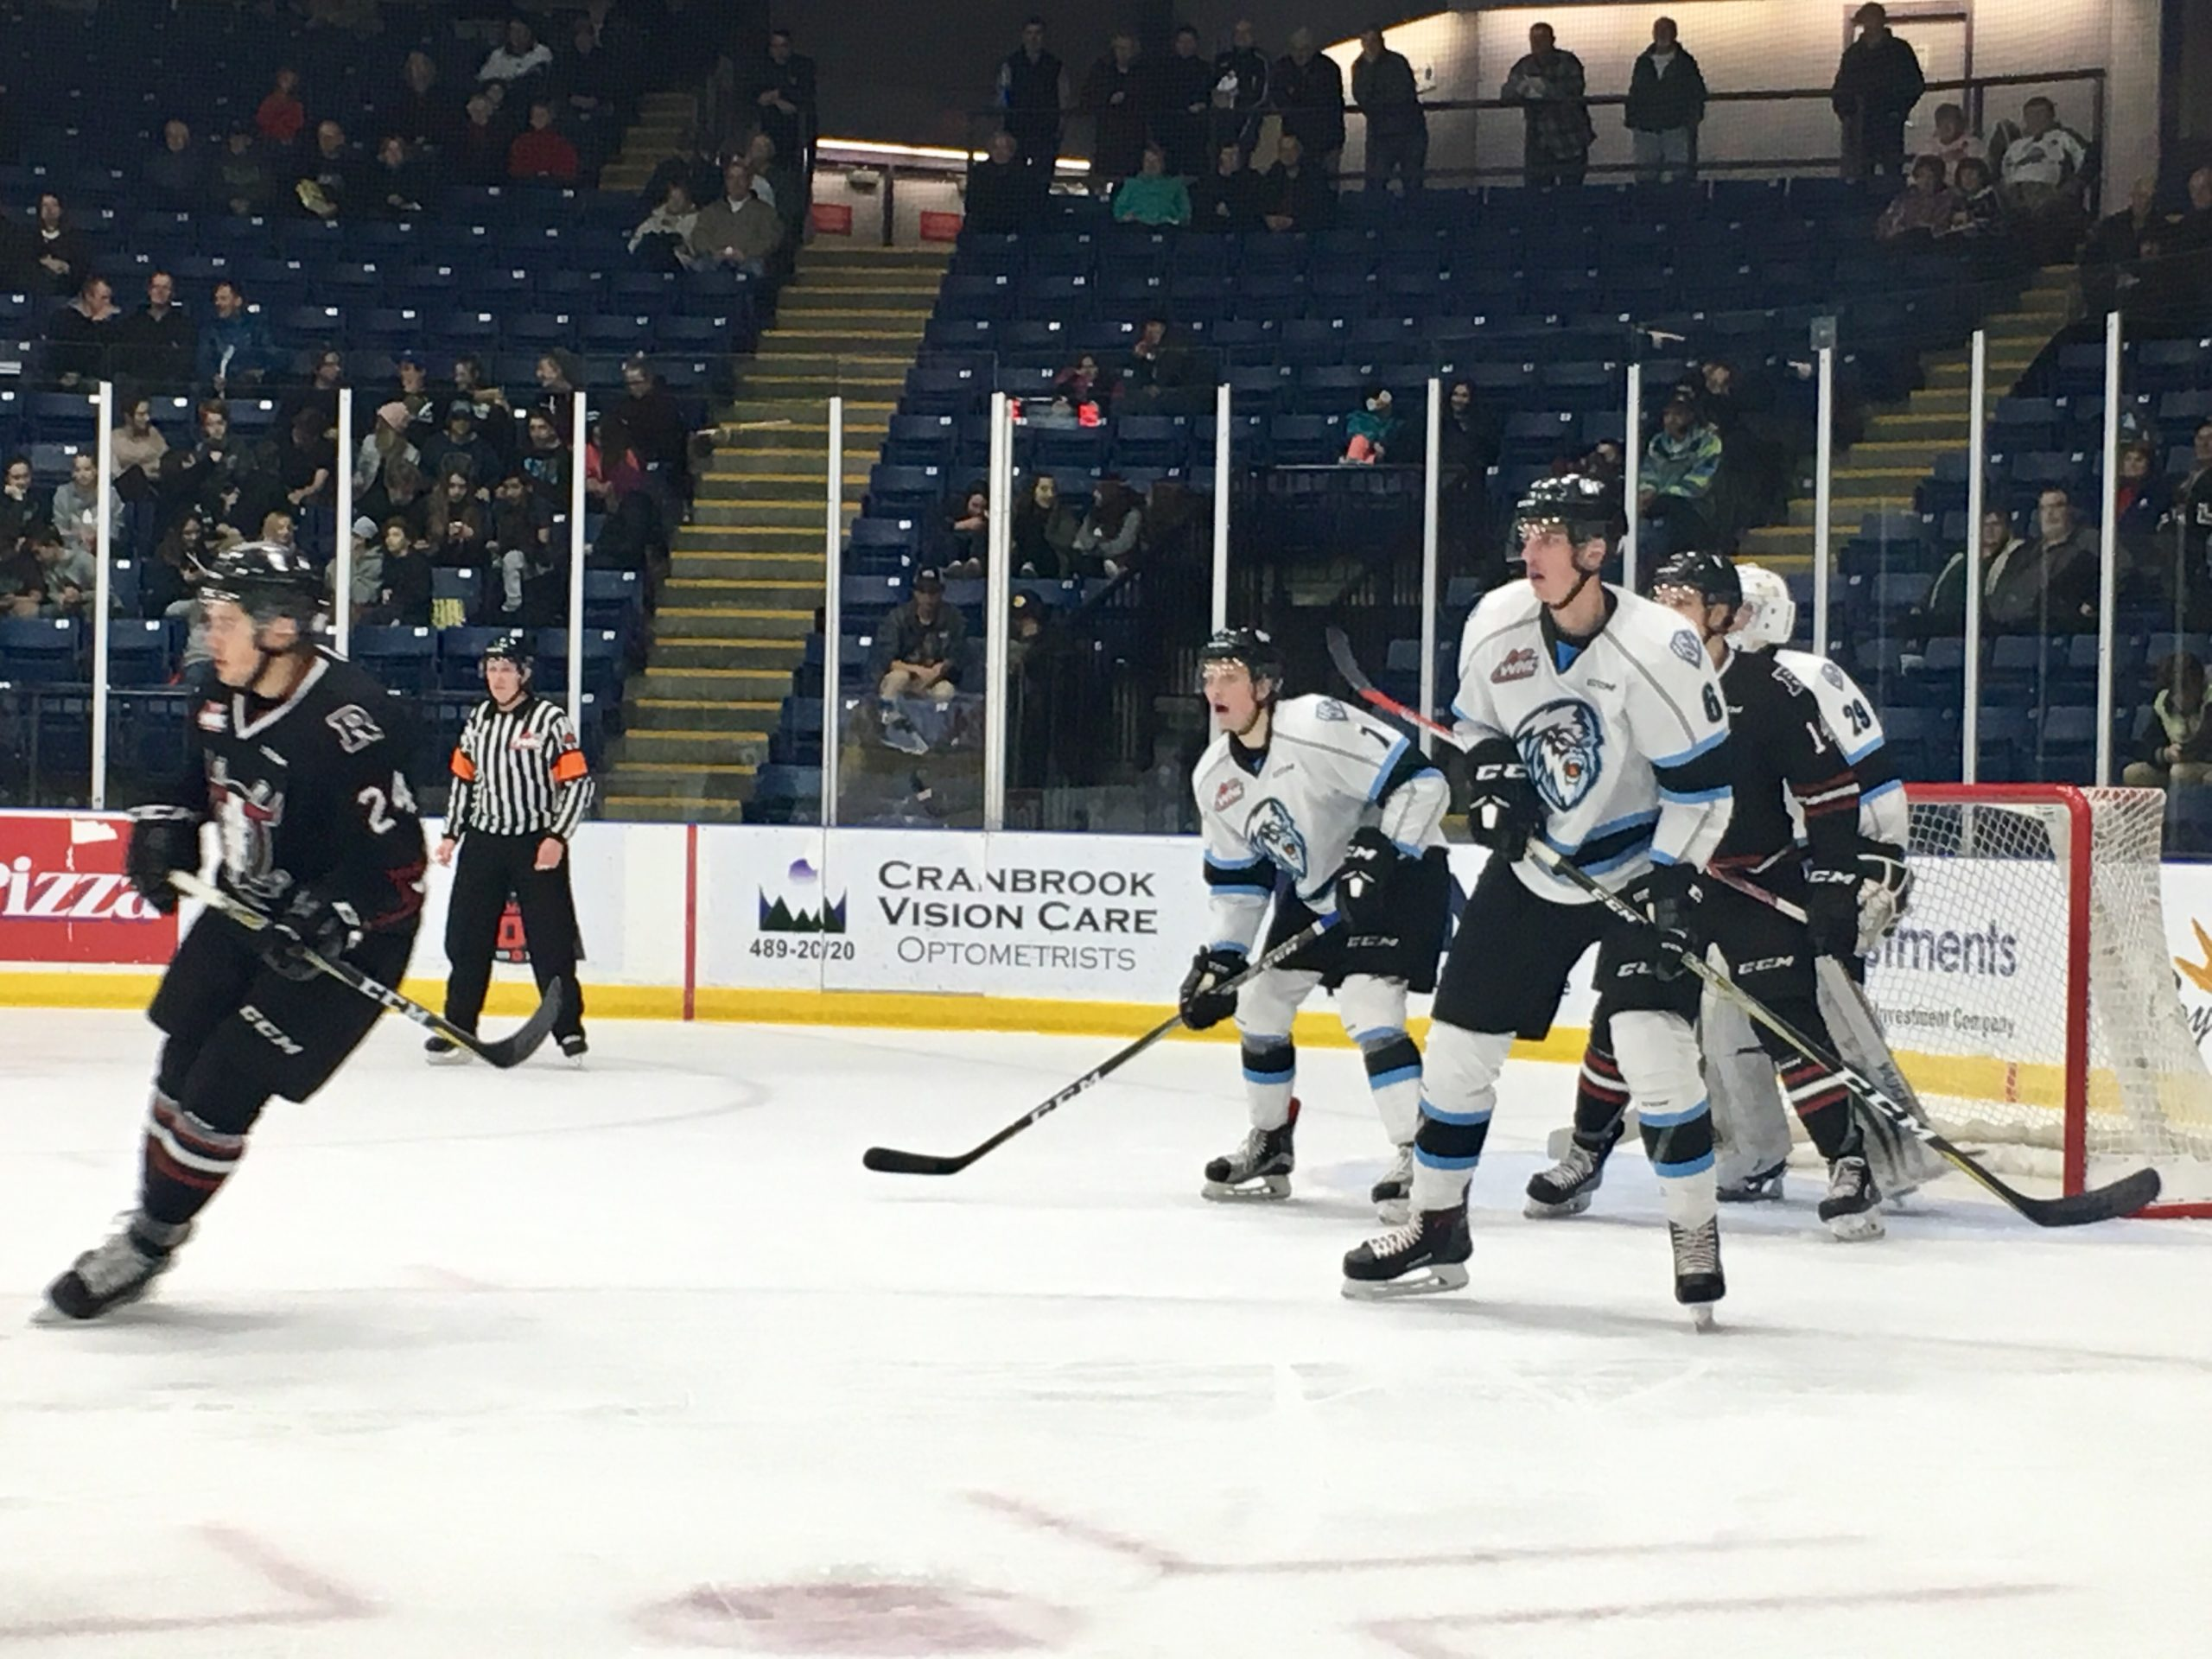 WHL: Pouliot lifts ICE over Rebels in dying minutes